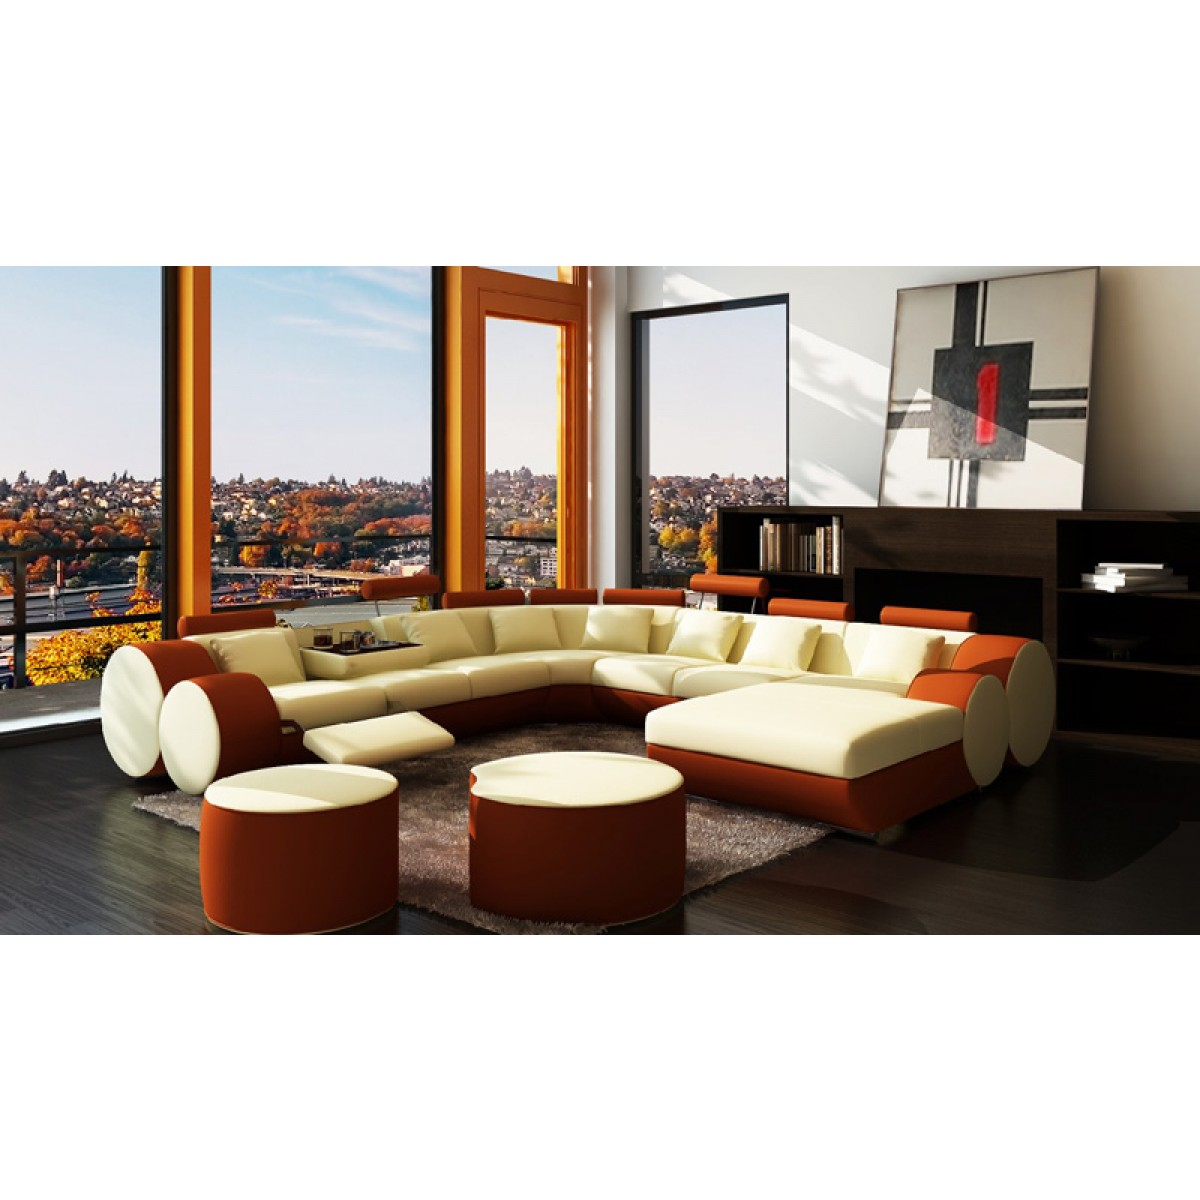 Canap panoramique en cuir rolls 8 places relax - Canape panoramique en cuir ...